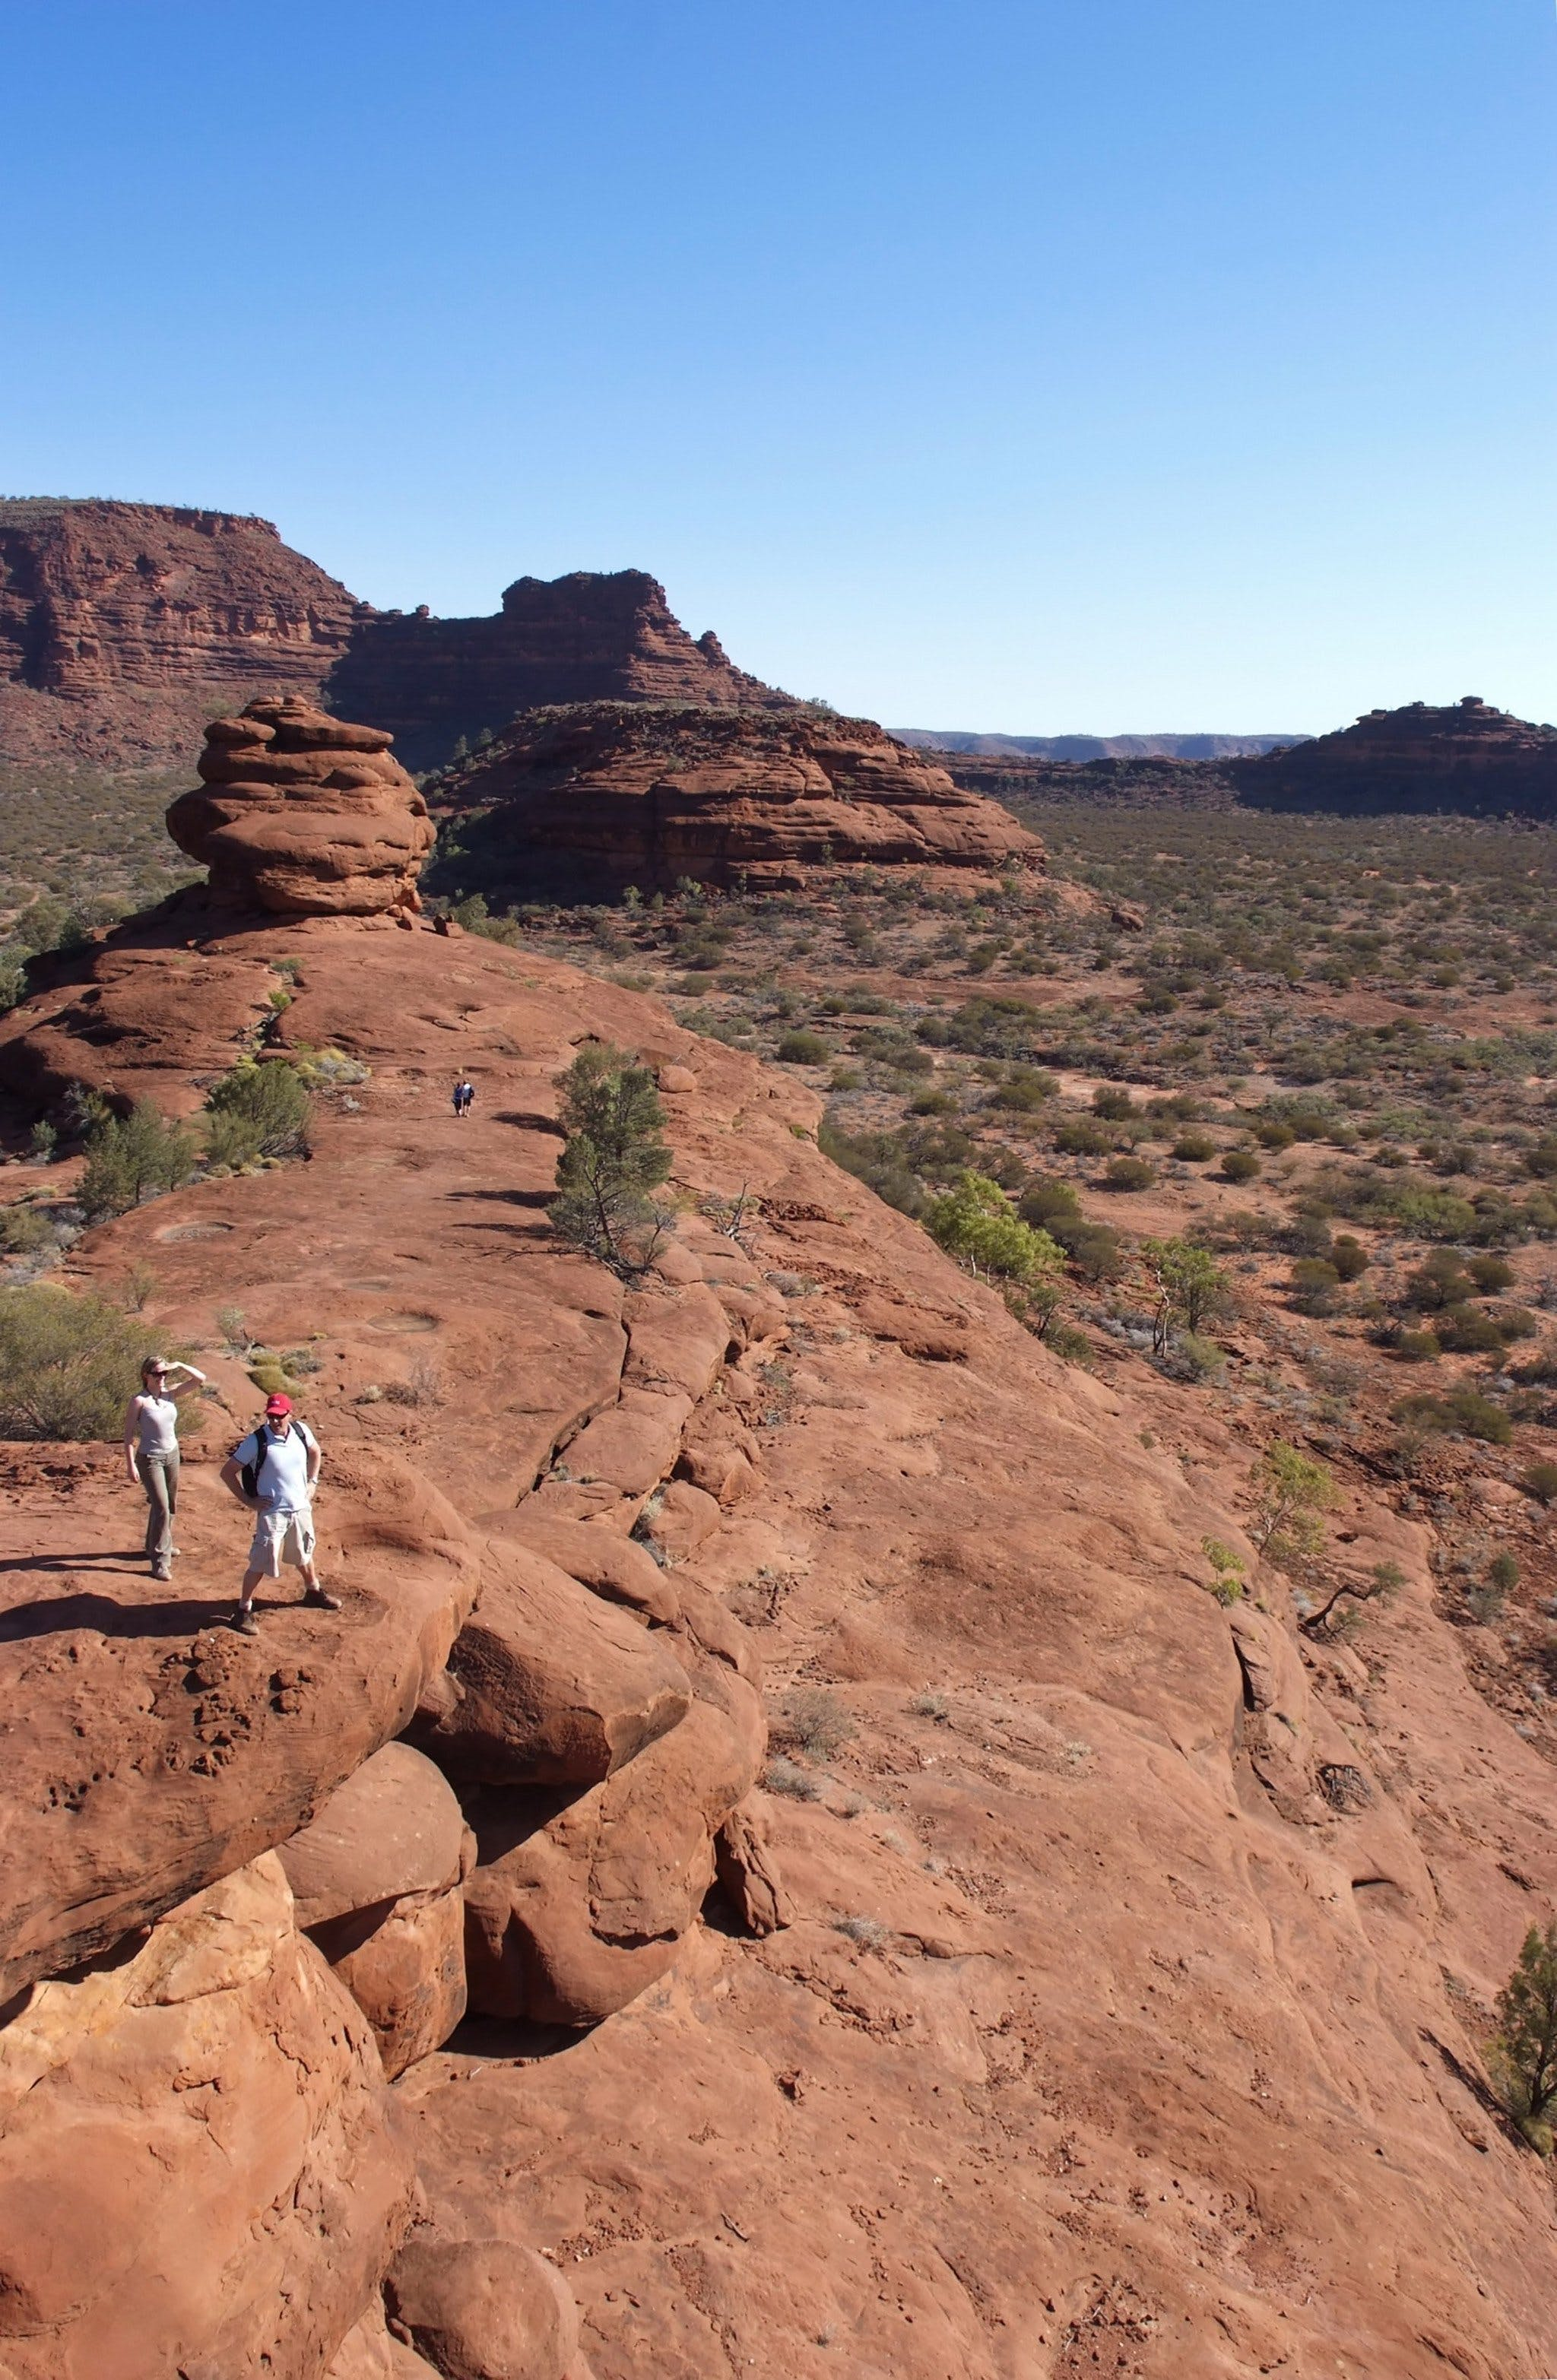 Looking out over Palm Valley in Finke Gorge National Park